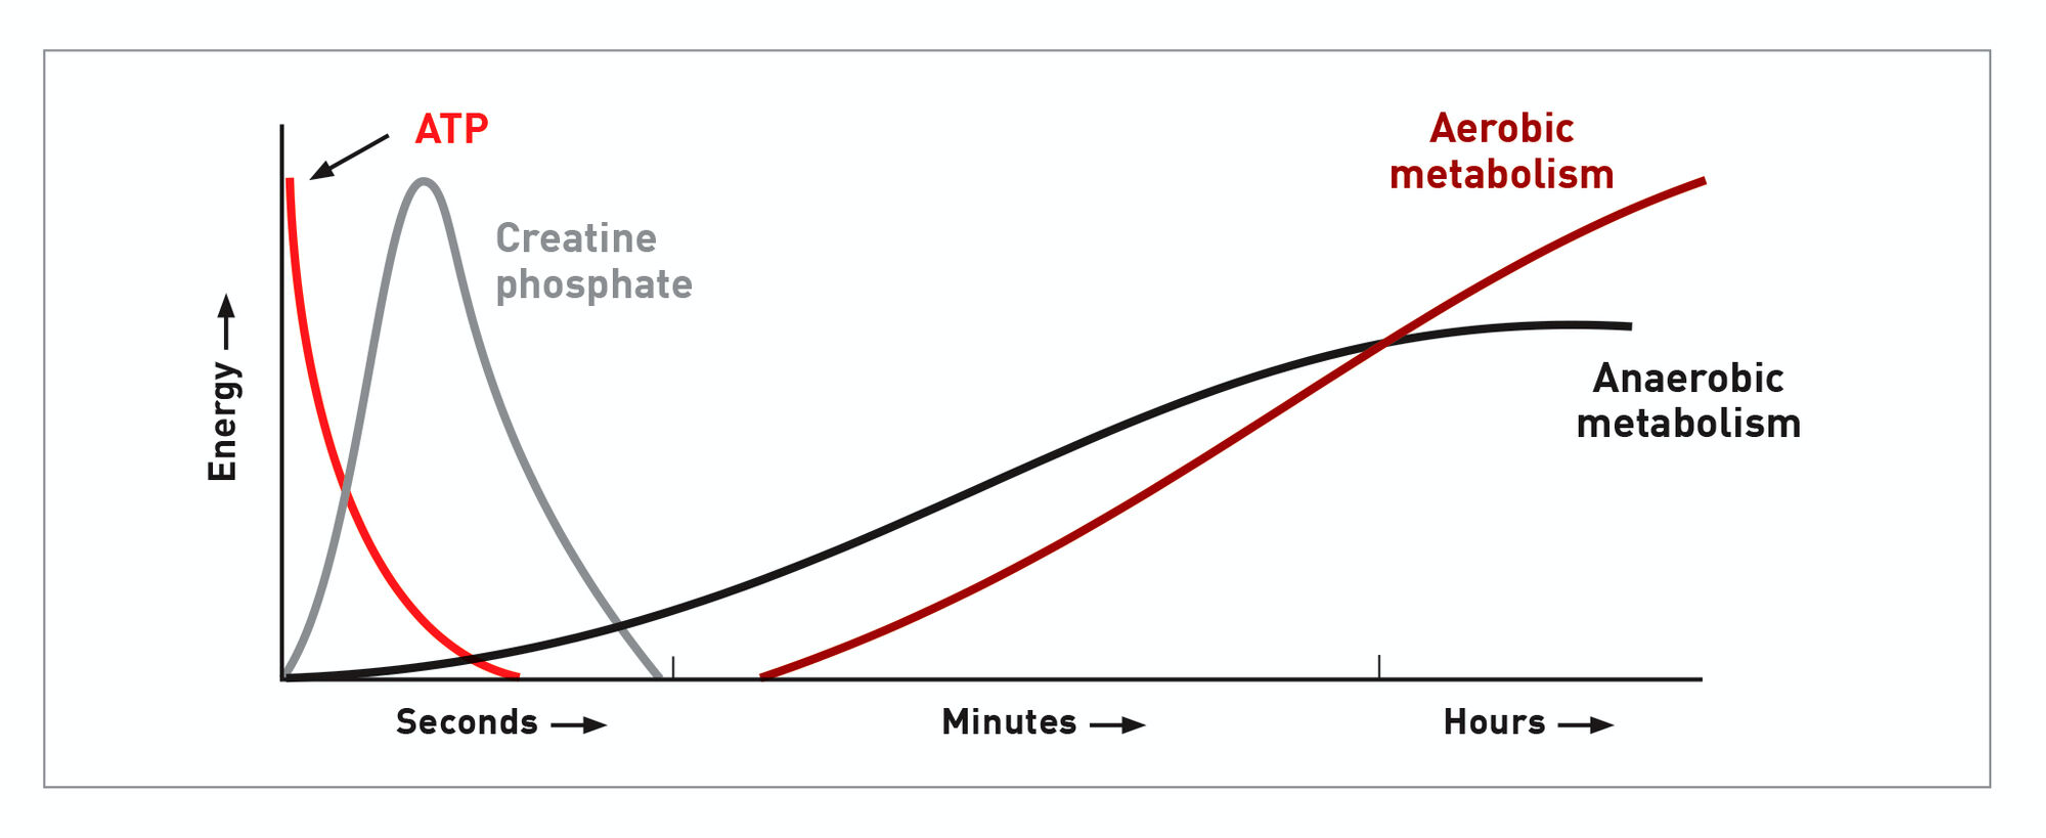 A graph showing the different energy sources that are used over time during exercise.